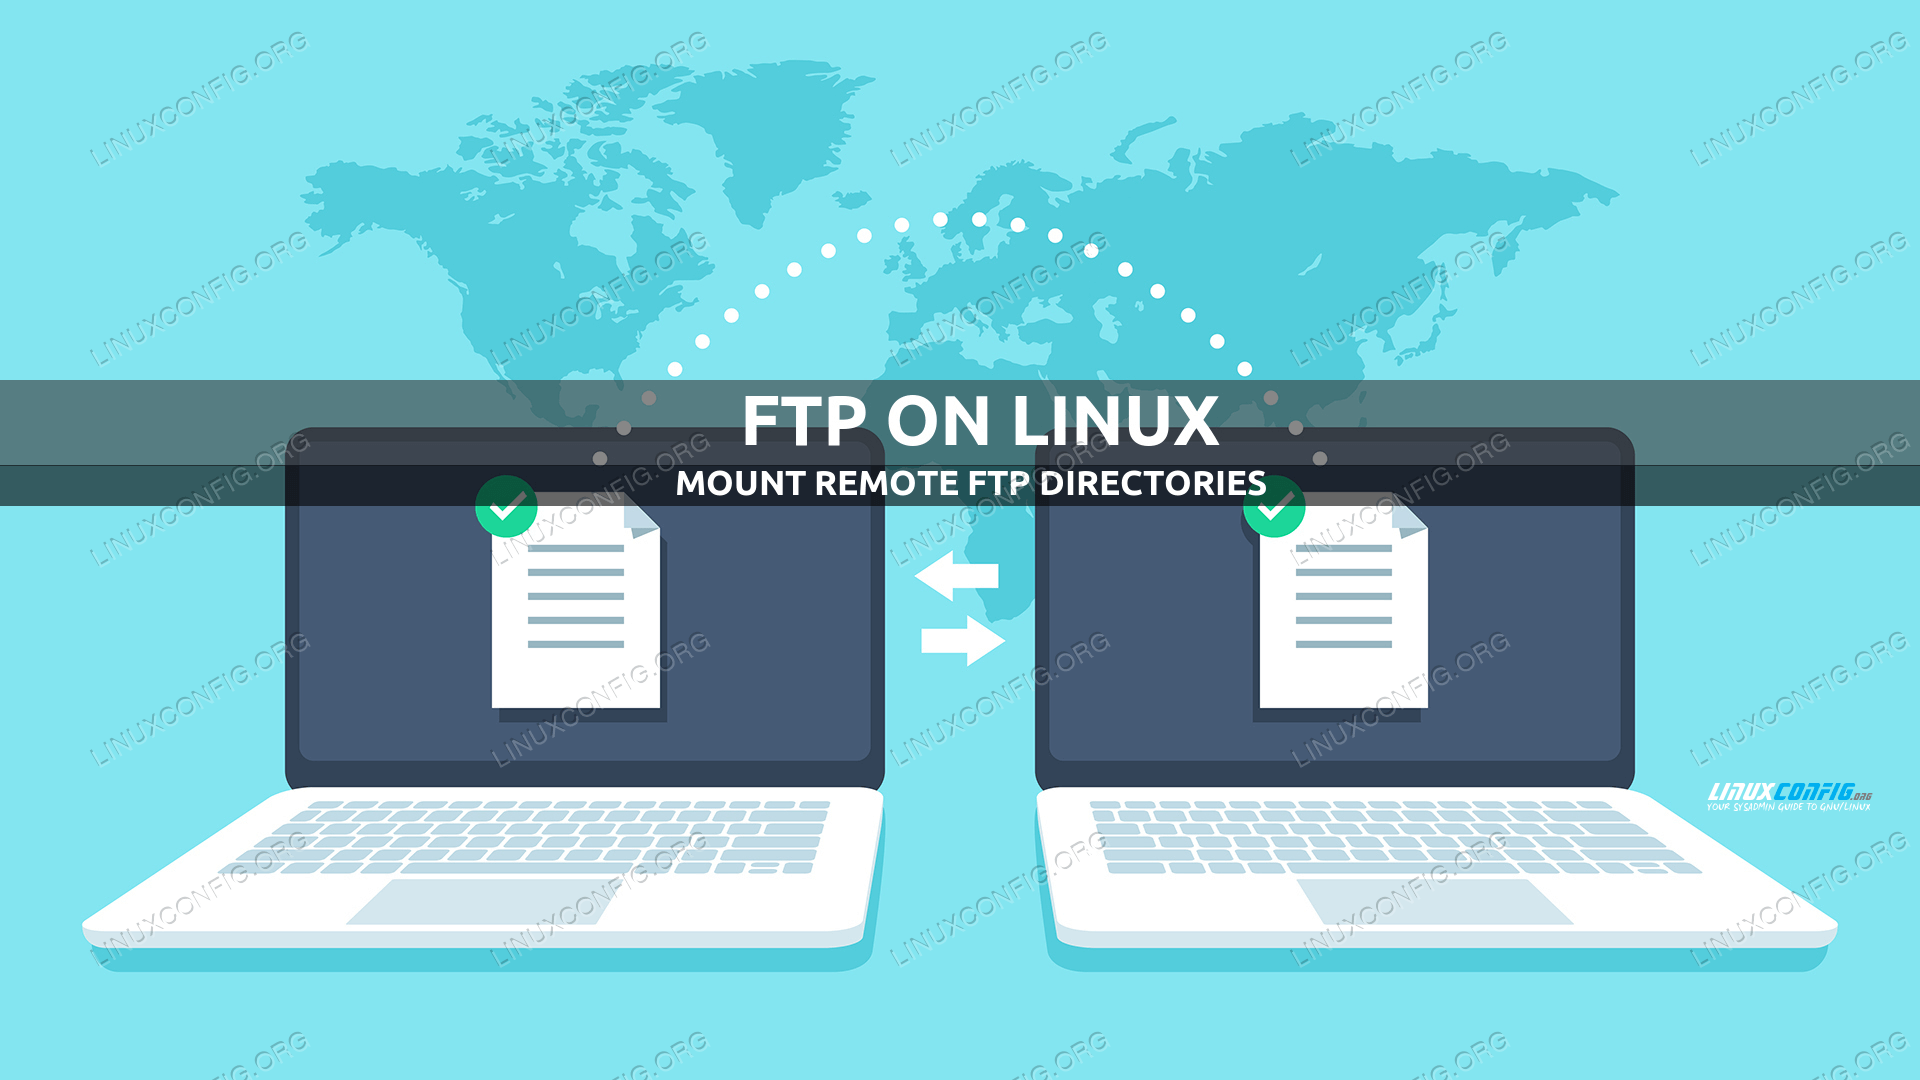 Using CurlFtpFS to mount remote FTP directories on Linux